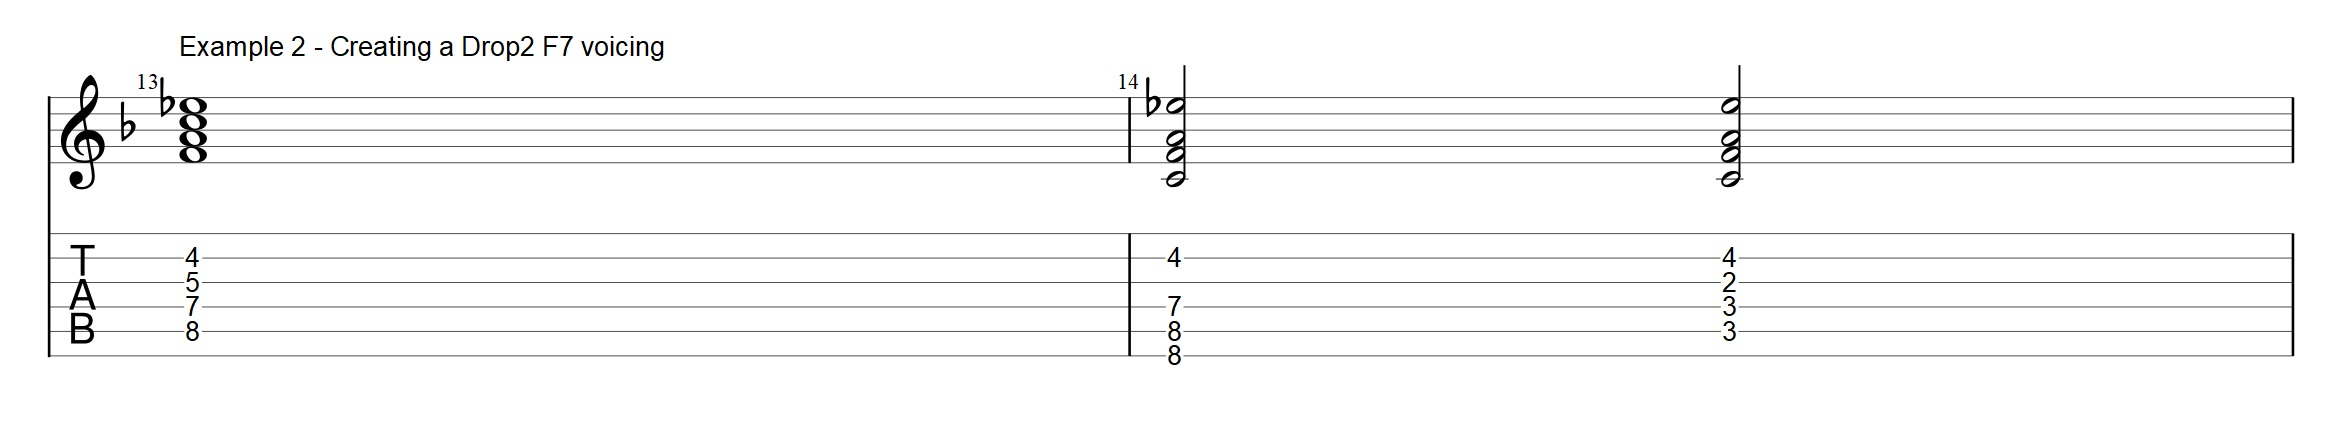 Constructing Drop 2 voicings